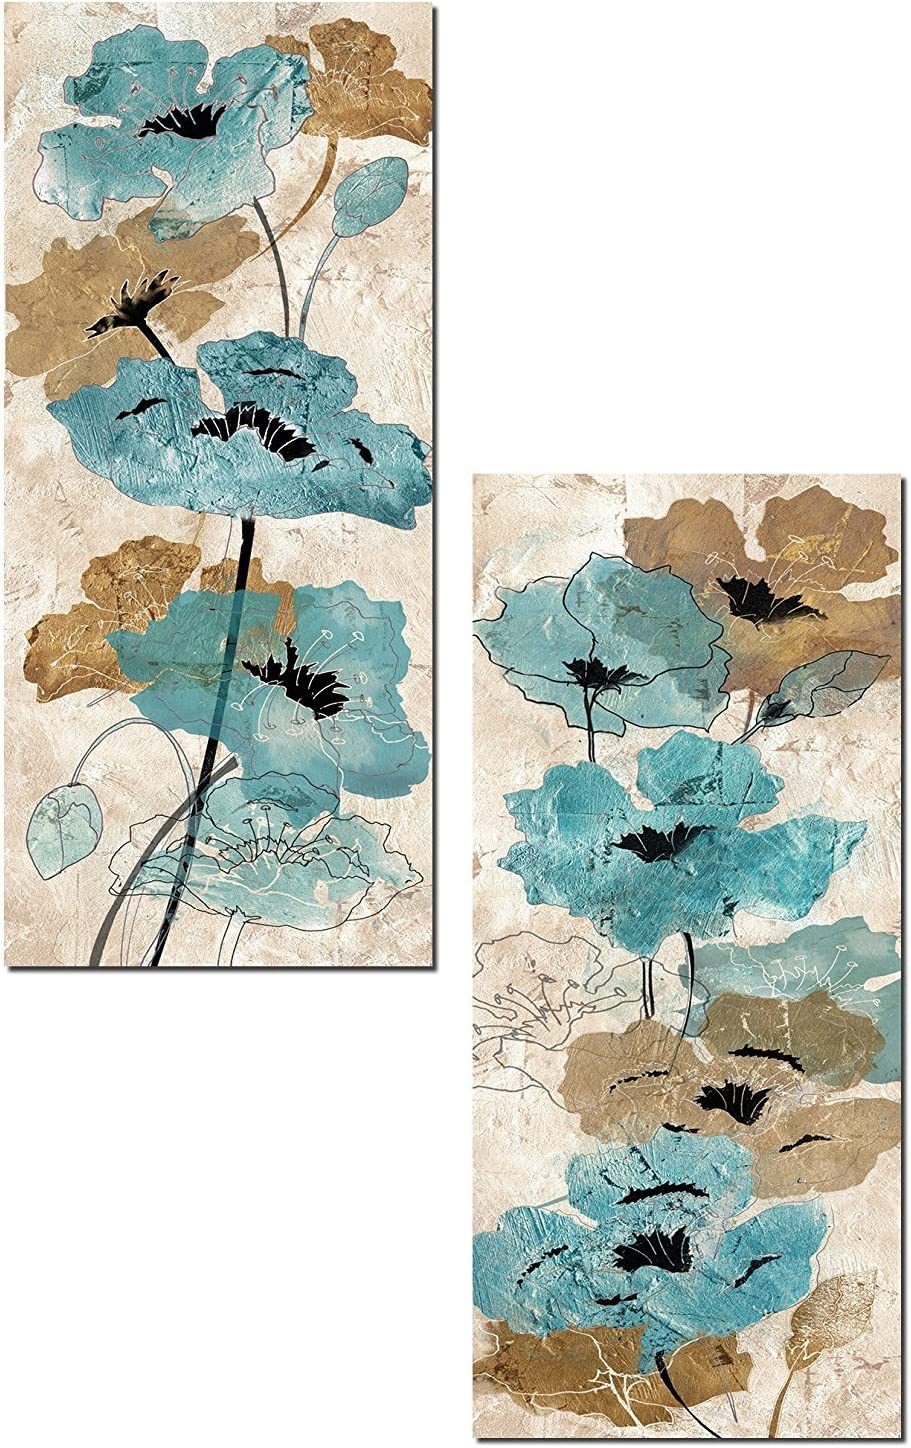 Gorgeous Garden Watercolor-Style Tan and Teal Poppy Panels by Tre Sorelle Studios; Two 8x18in Poster Print